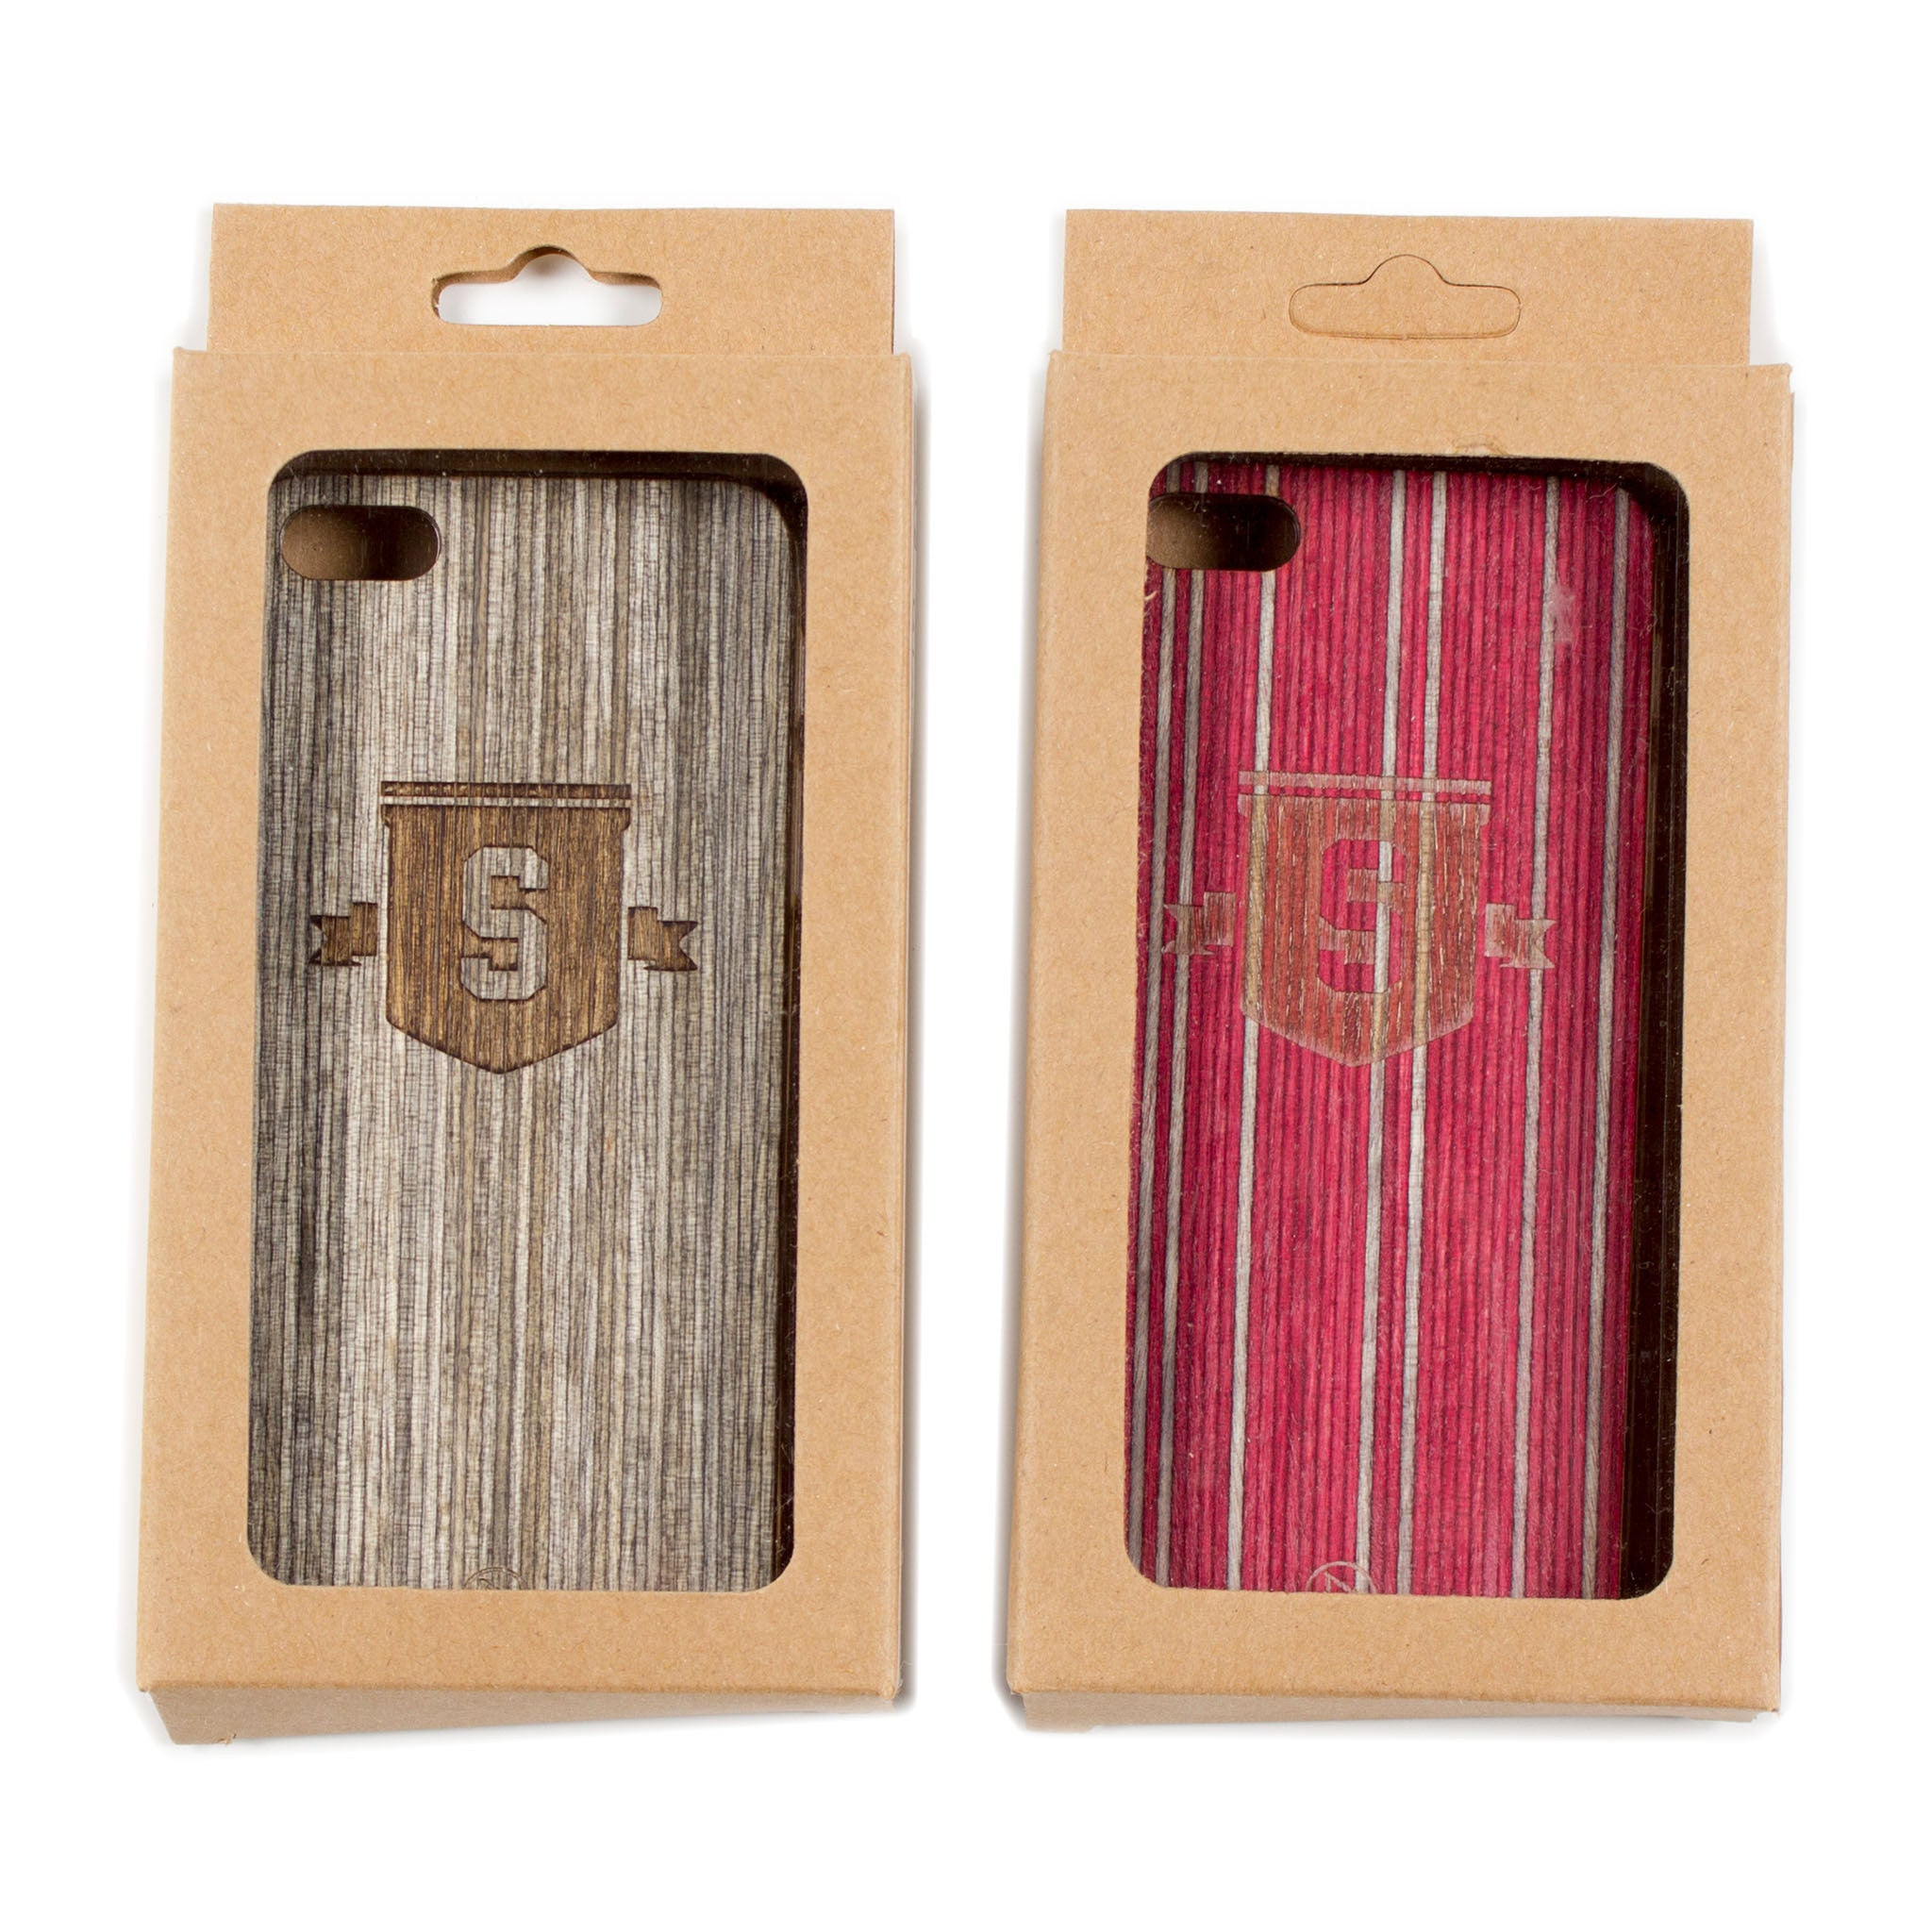 Lastu Iphone 5 / 5s / cover Ruska - Stoked Boardshop  - 3